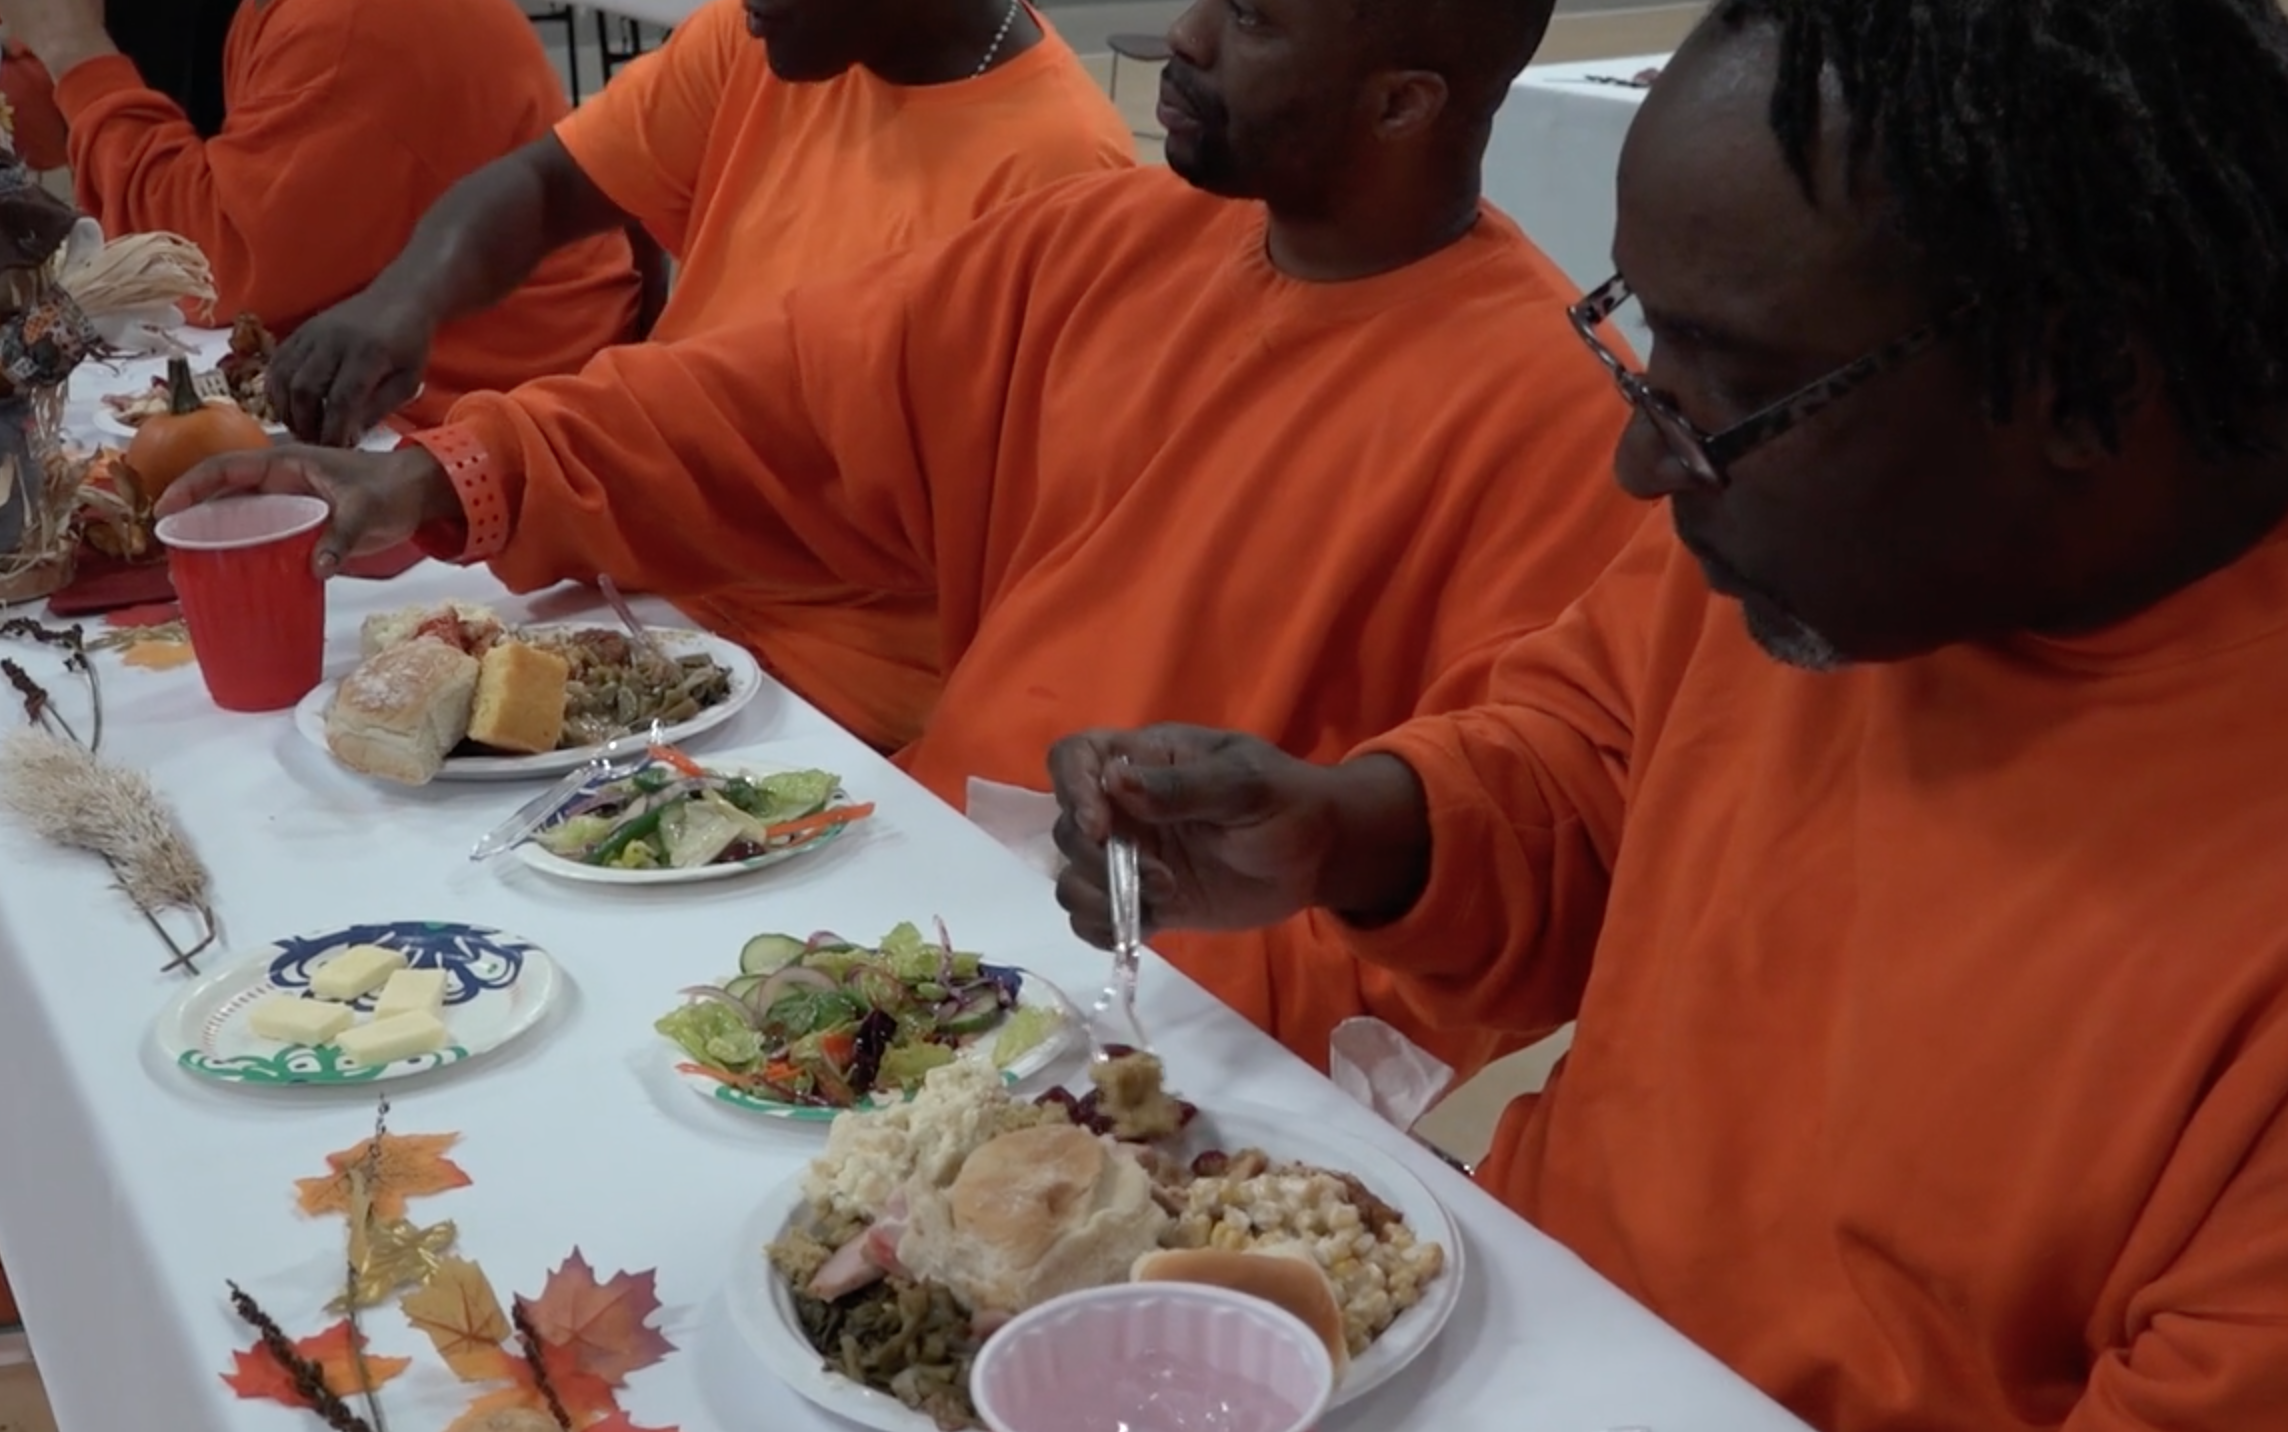 VIDEO: Inmates at SF jail reflect on Thanksgiving over a meal